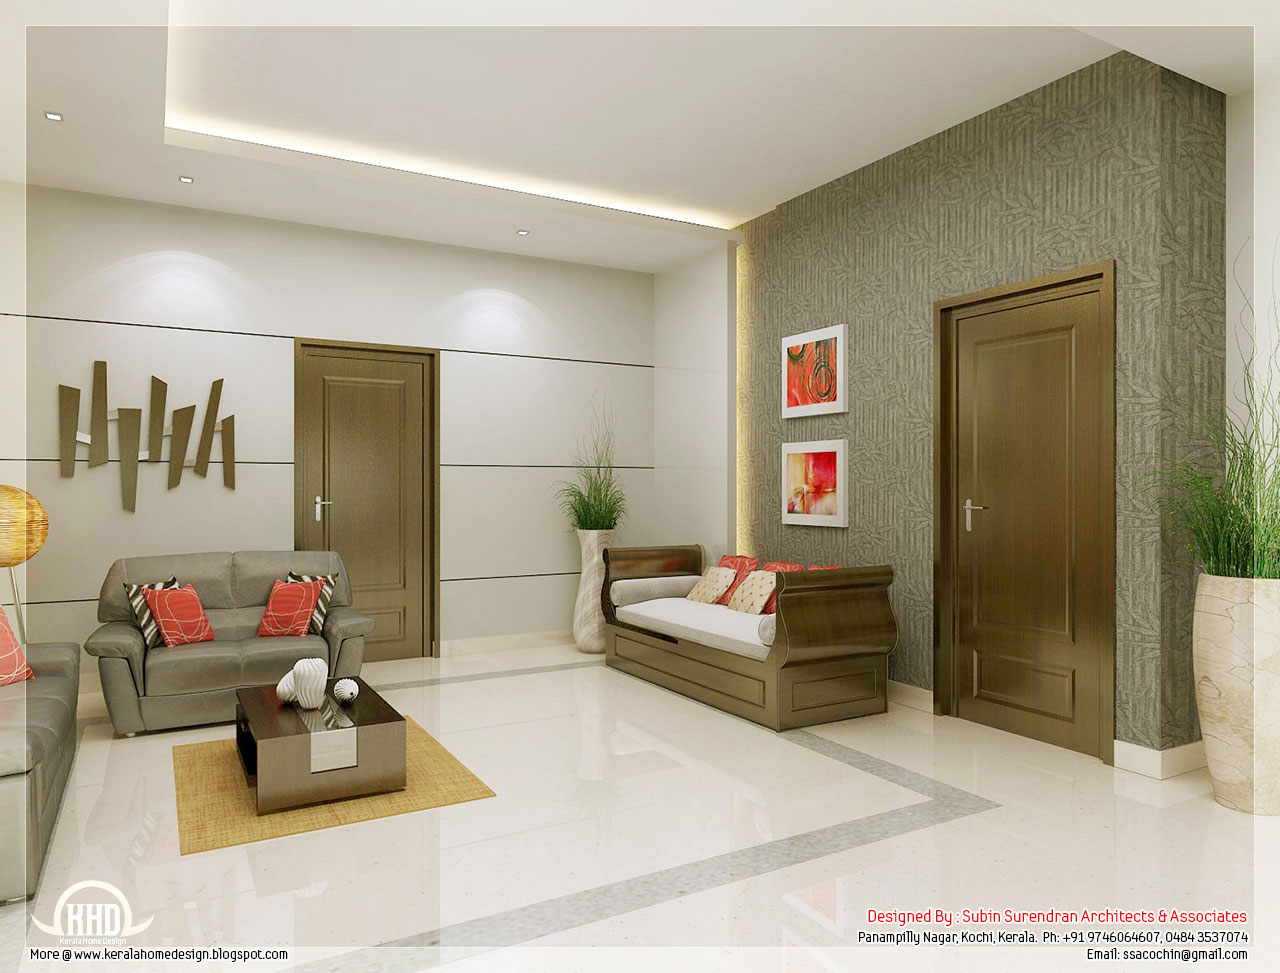 Awesome 3d interior renderings kerala home design and for Simple home interior design images